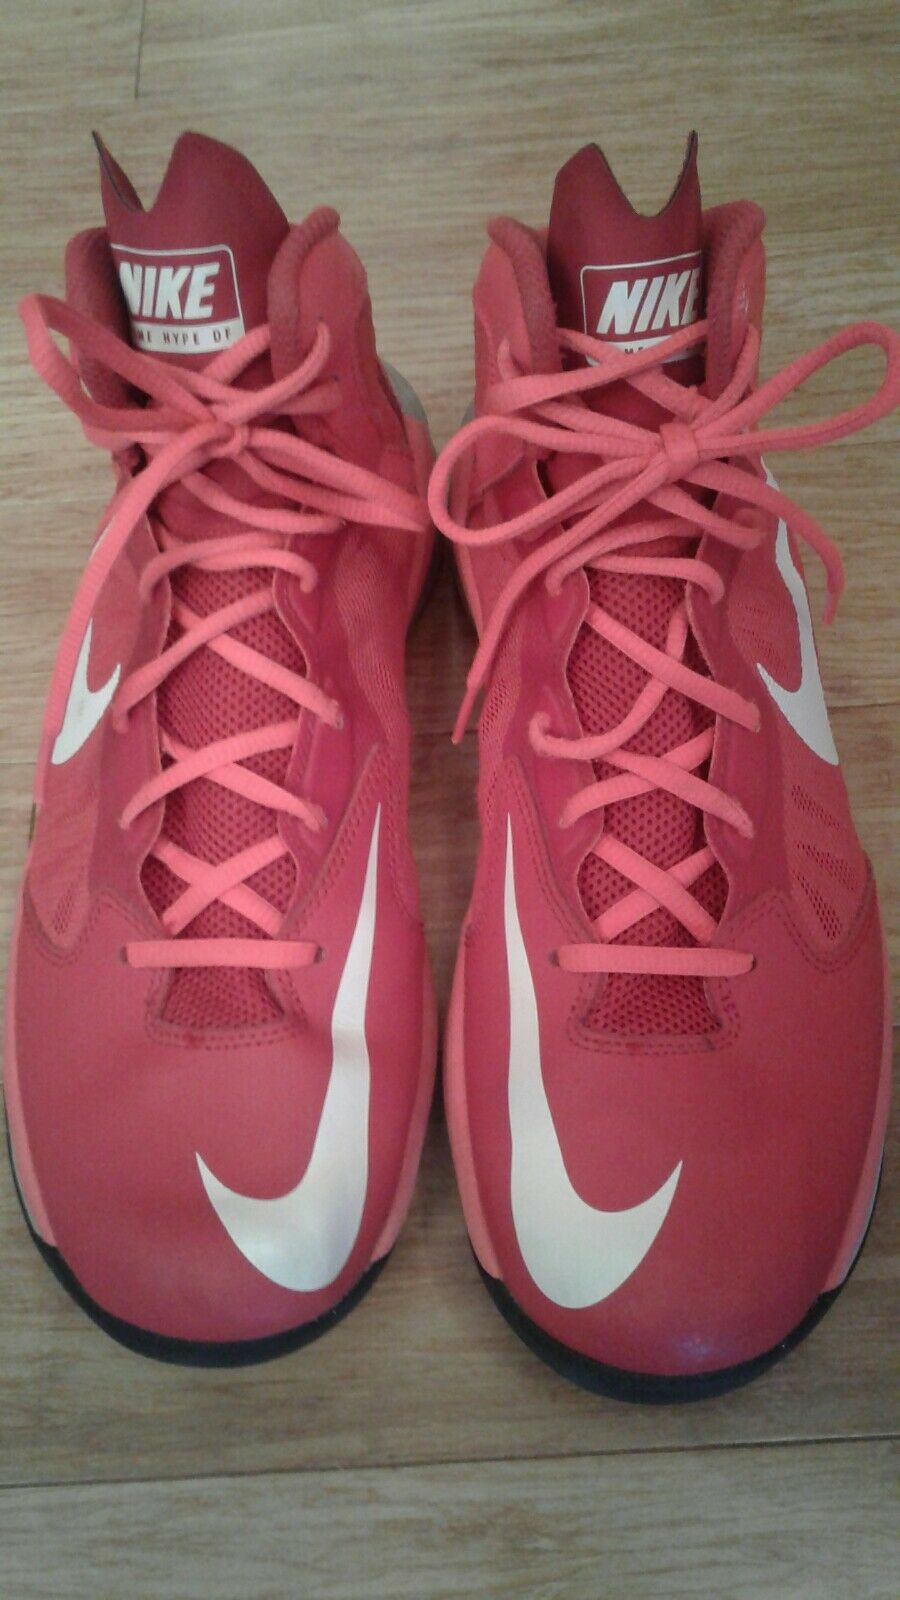 Men's NIKE PRIMEHYPE DFII 2015 Basketball Shoes Red Sz.8.5 EXCELLENT CONDITION